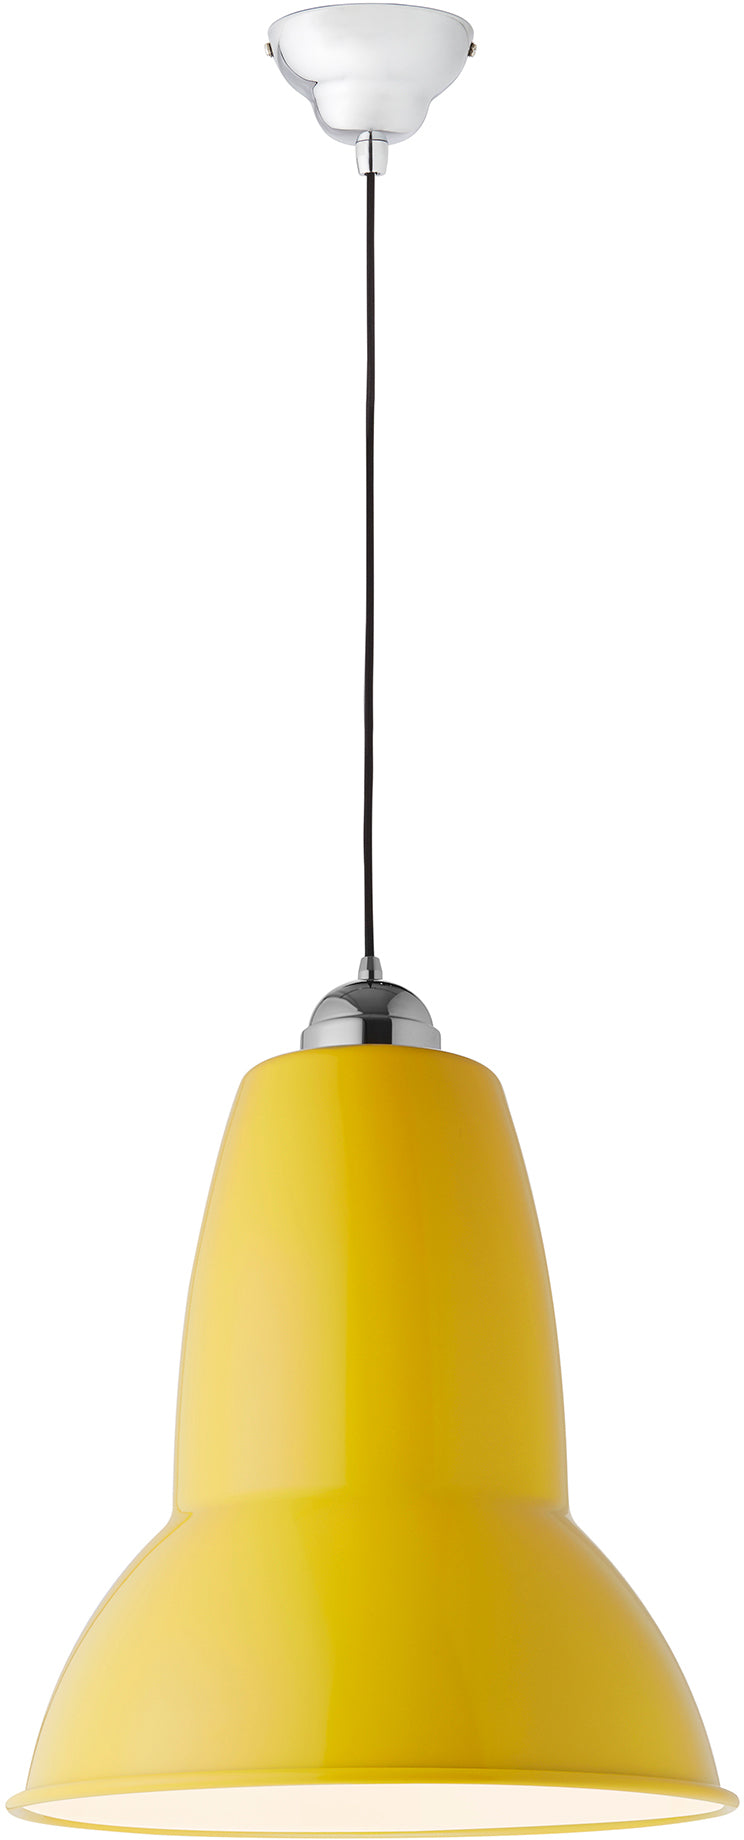 Anglepoise Original 1227 Giant Pendant Citrus Yellow